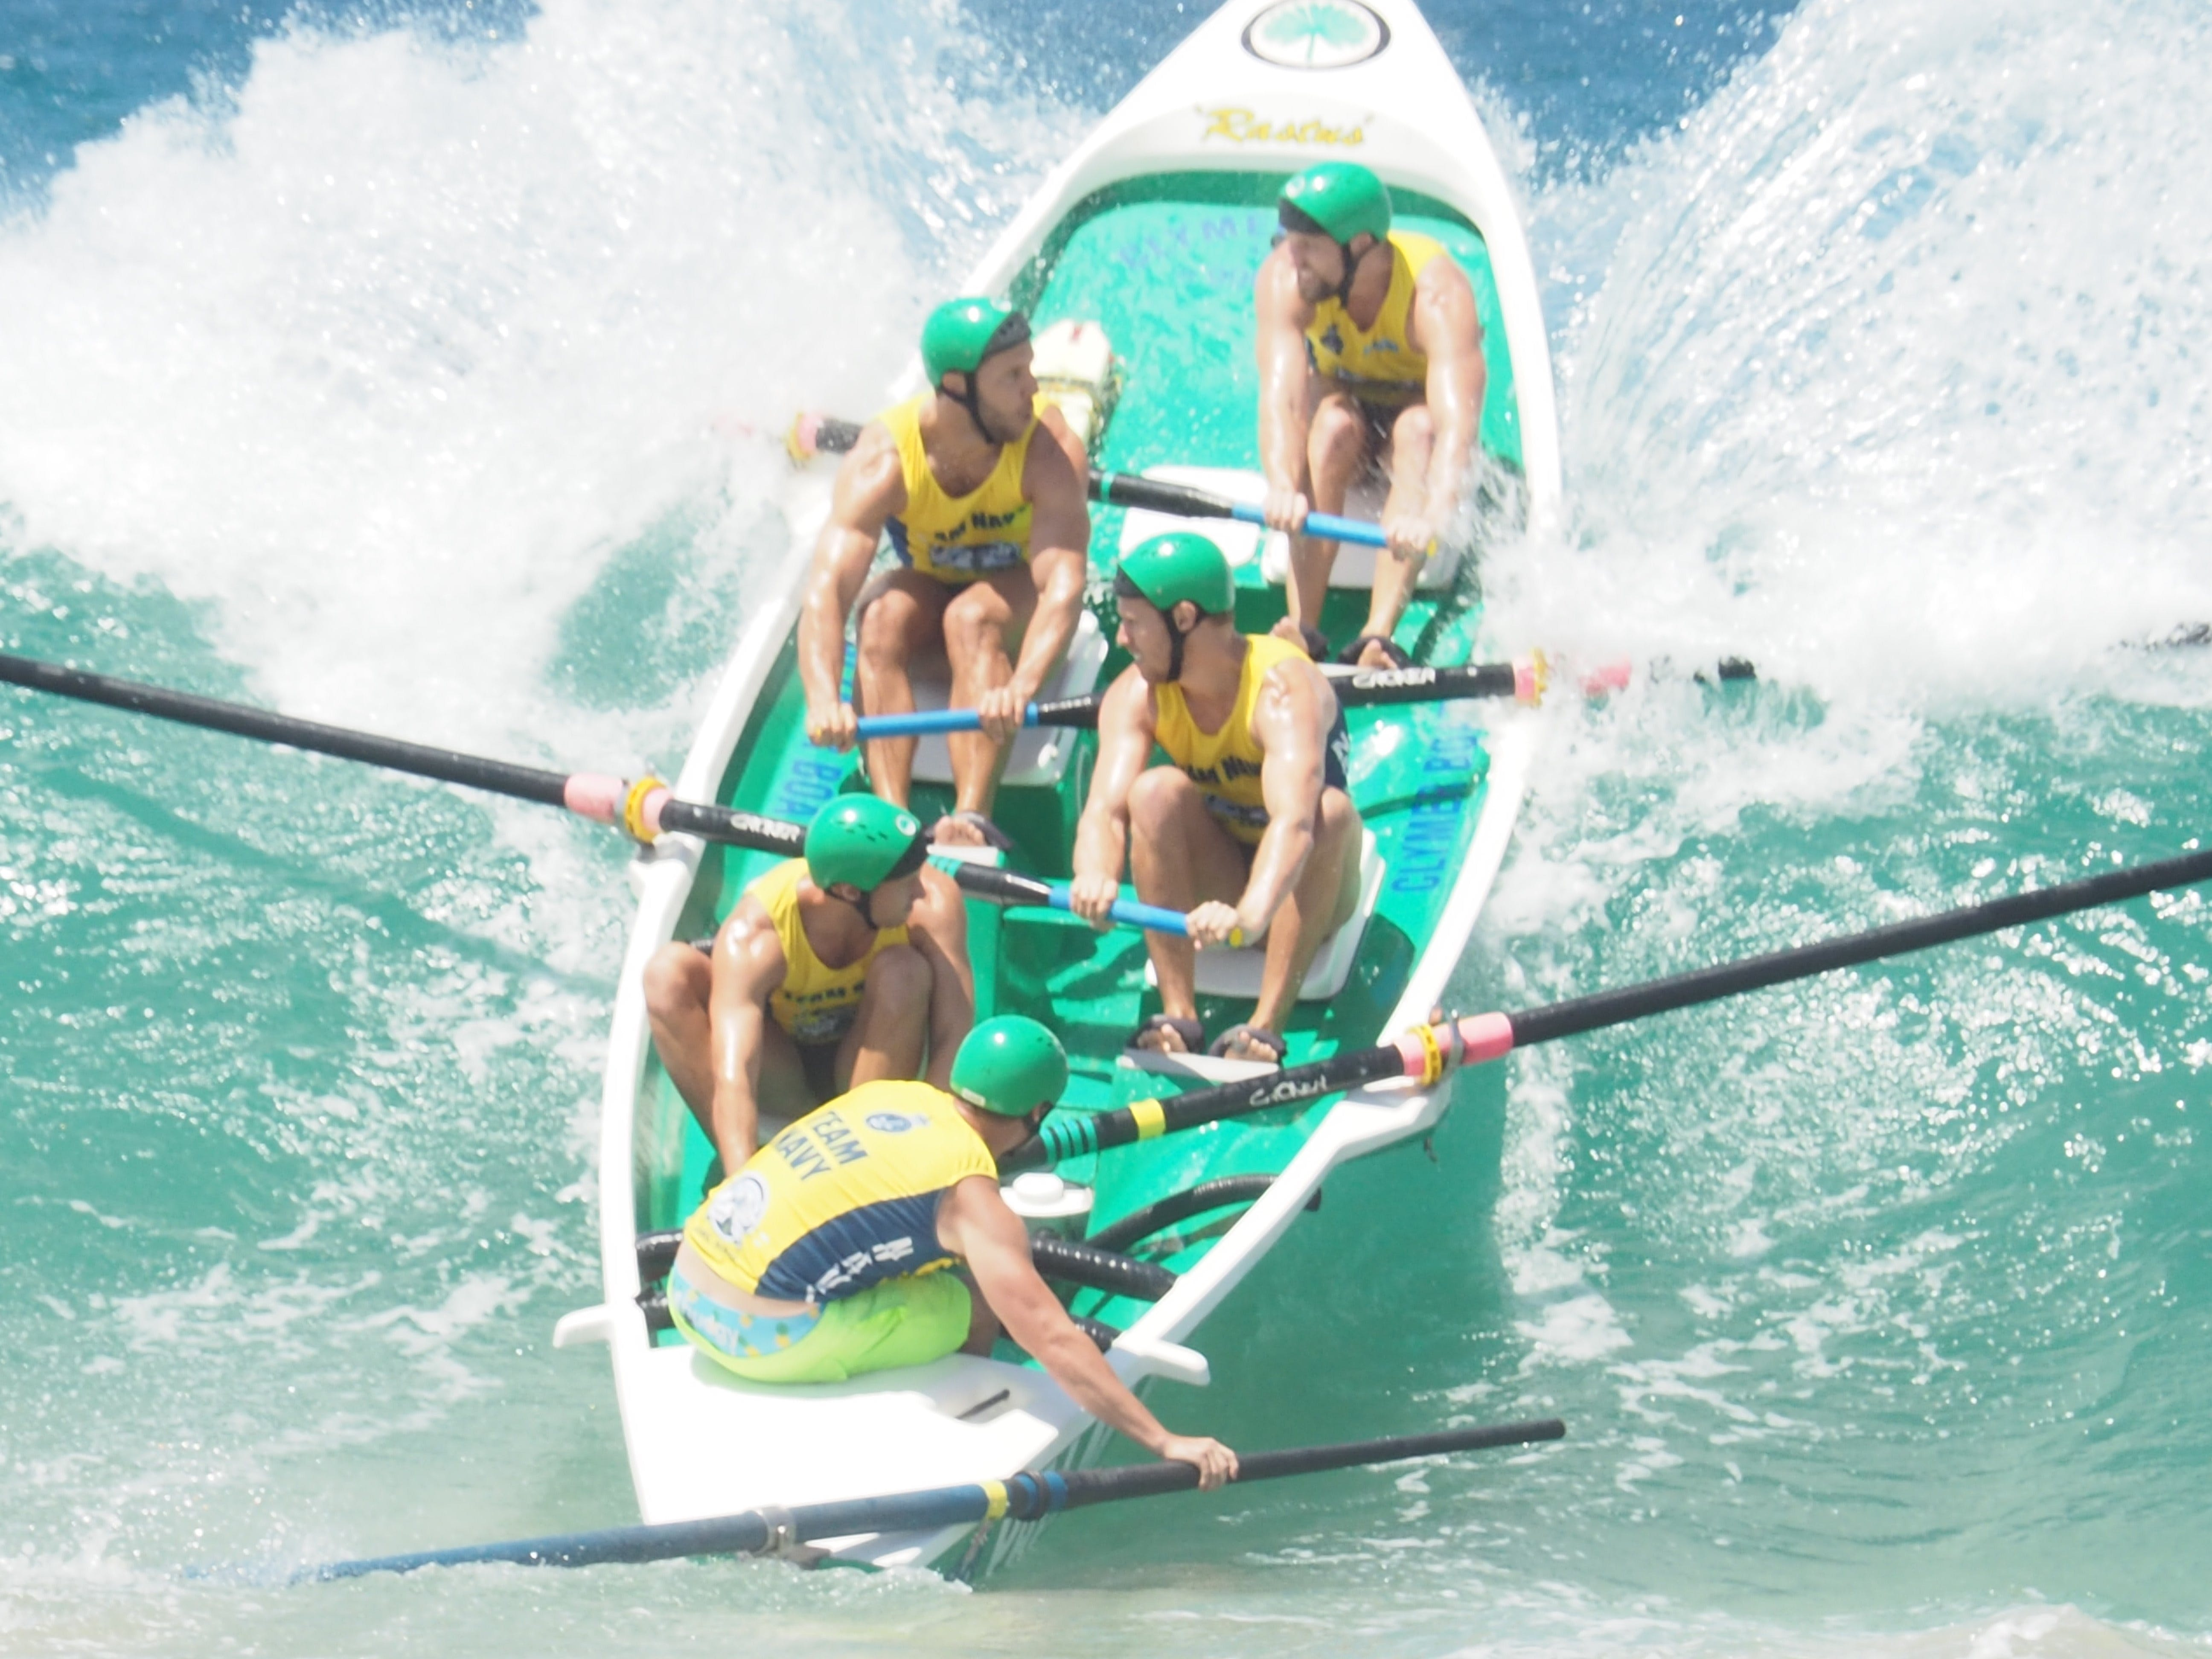 Australian Surf Rowers League Open - Accommodation in Surfers Paradise